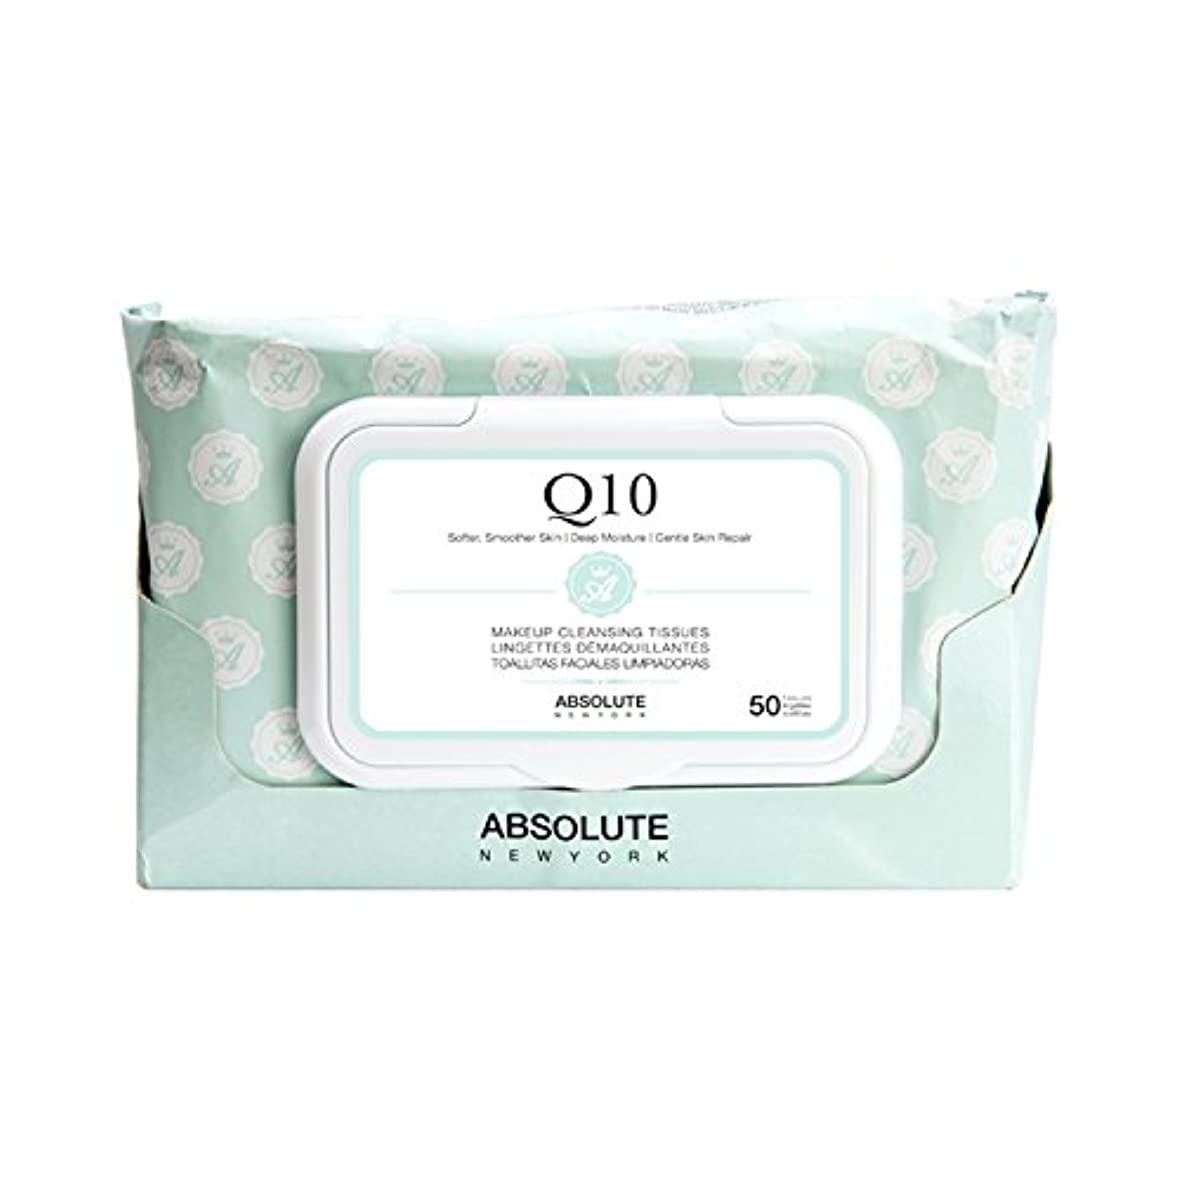 ABSOLUTE Makeup Cleansing Tissue 50CT - Q10 (並行輸入品)